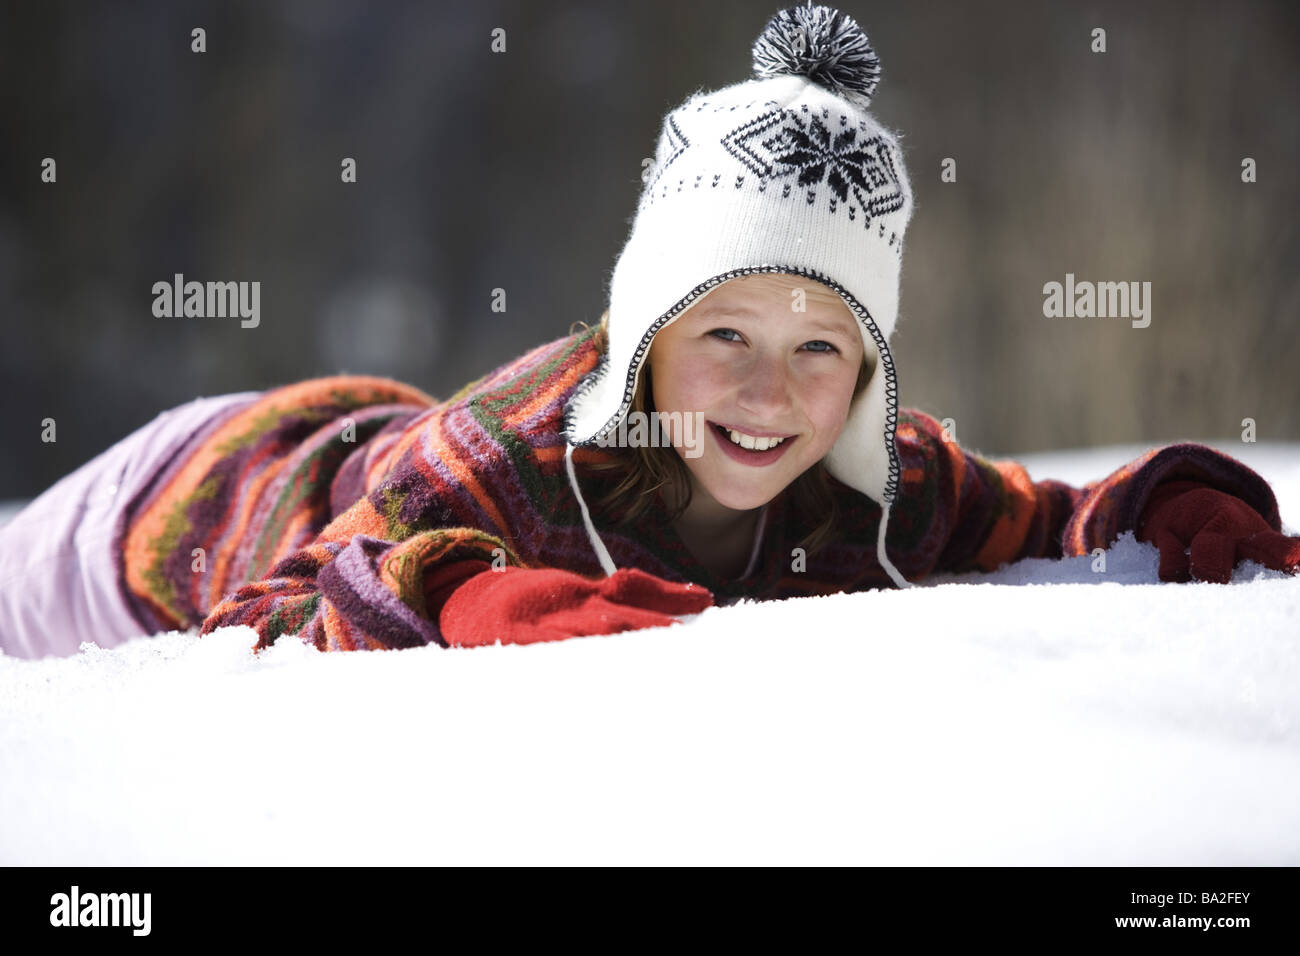 Girls cap winter-clothing smiles lies archly snow winters leisure time vacation winter-vacation vacation winter - Stock Image